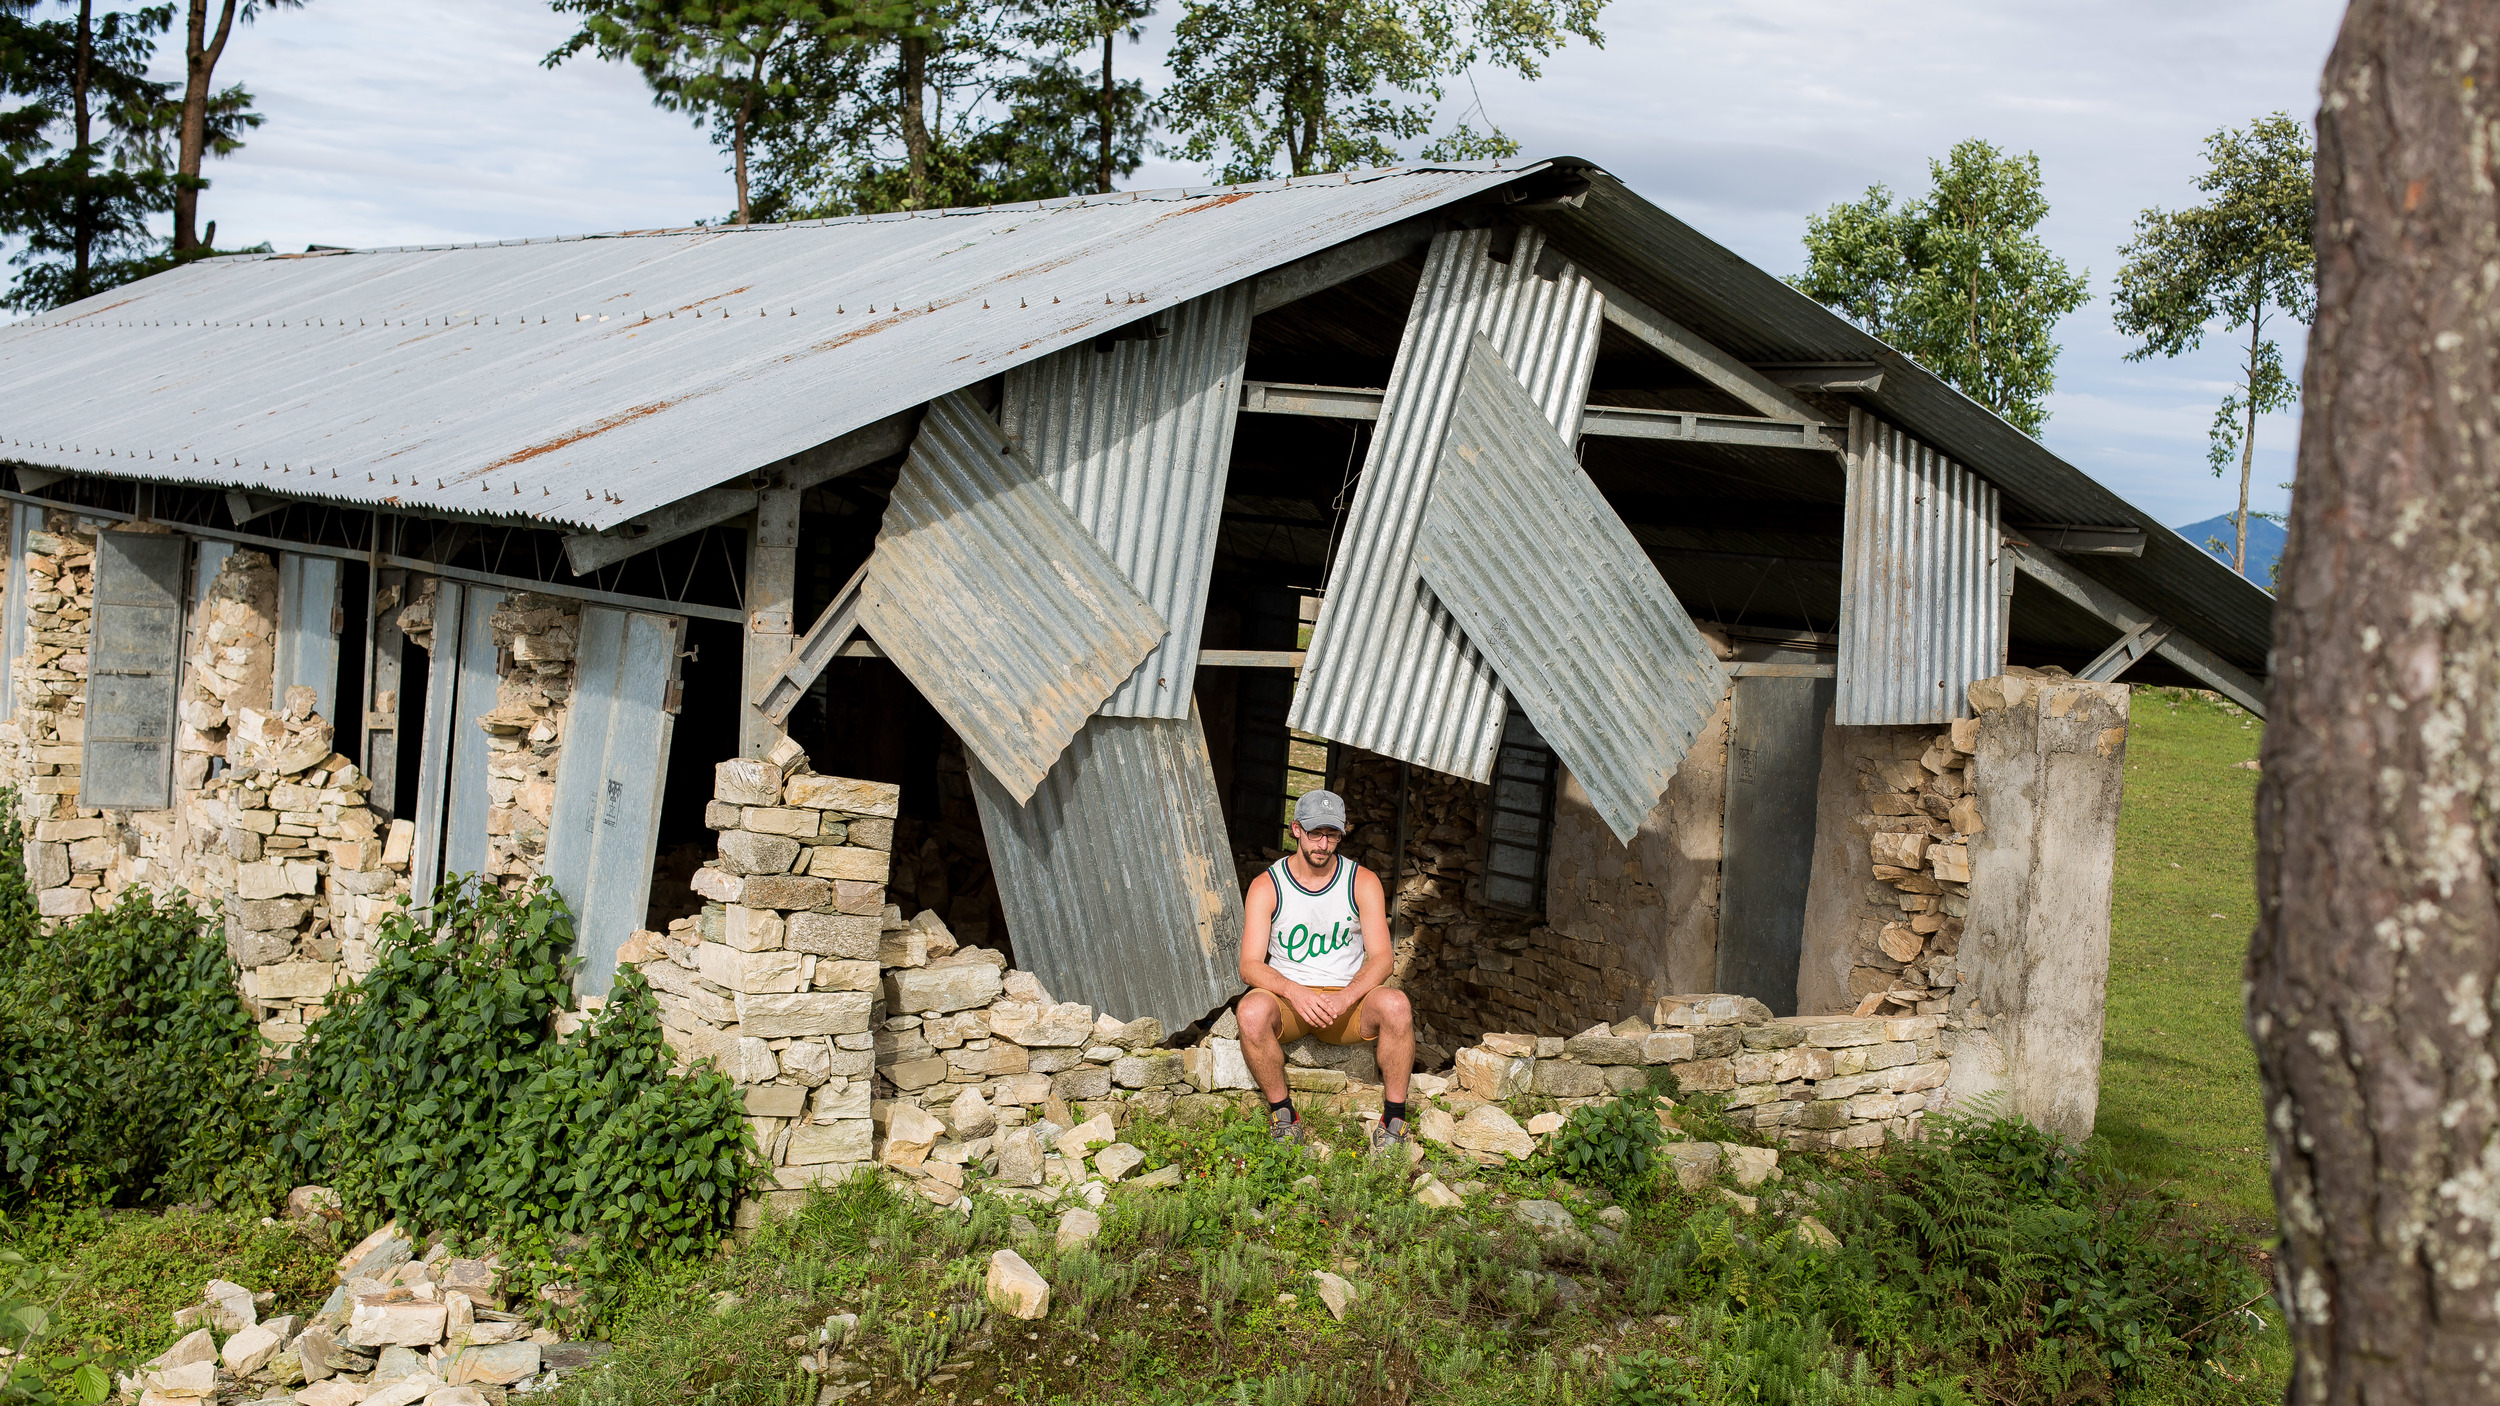 Thinking about the damage that destroyed the village of Deorali and this school.